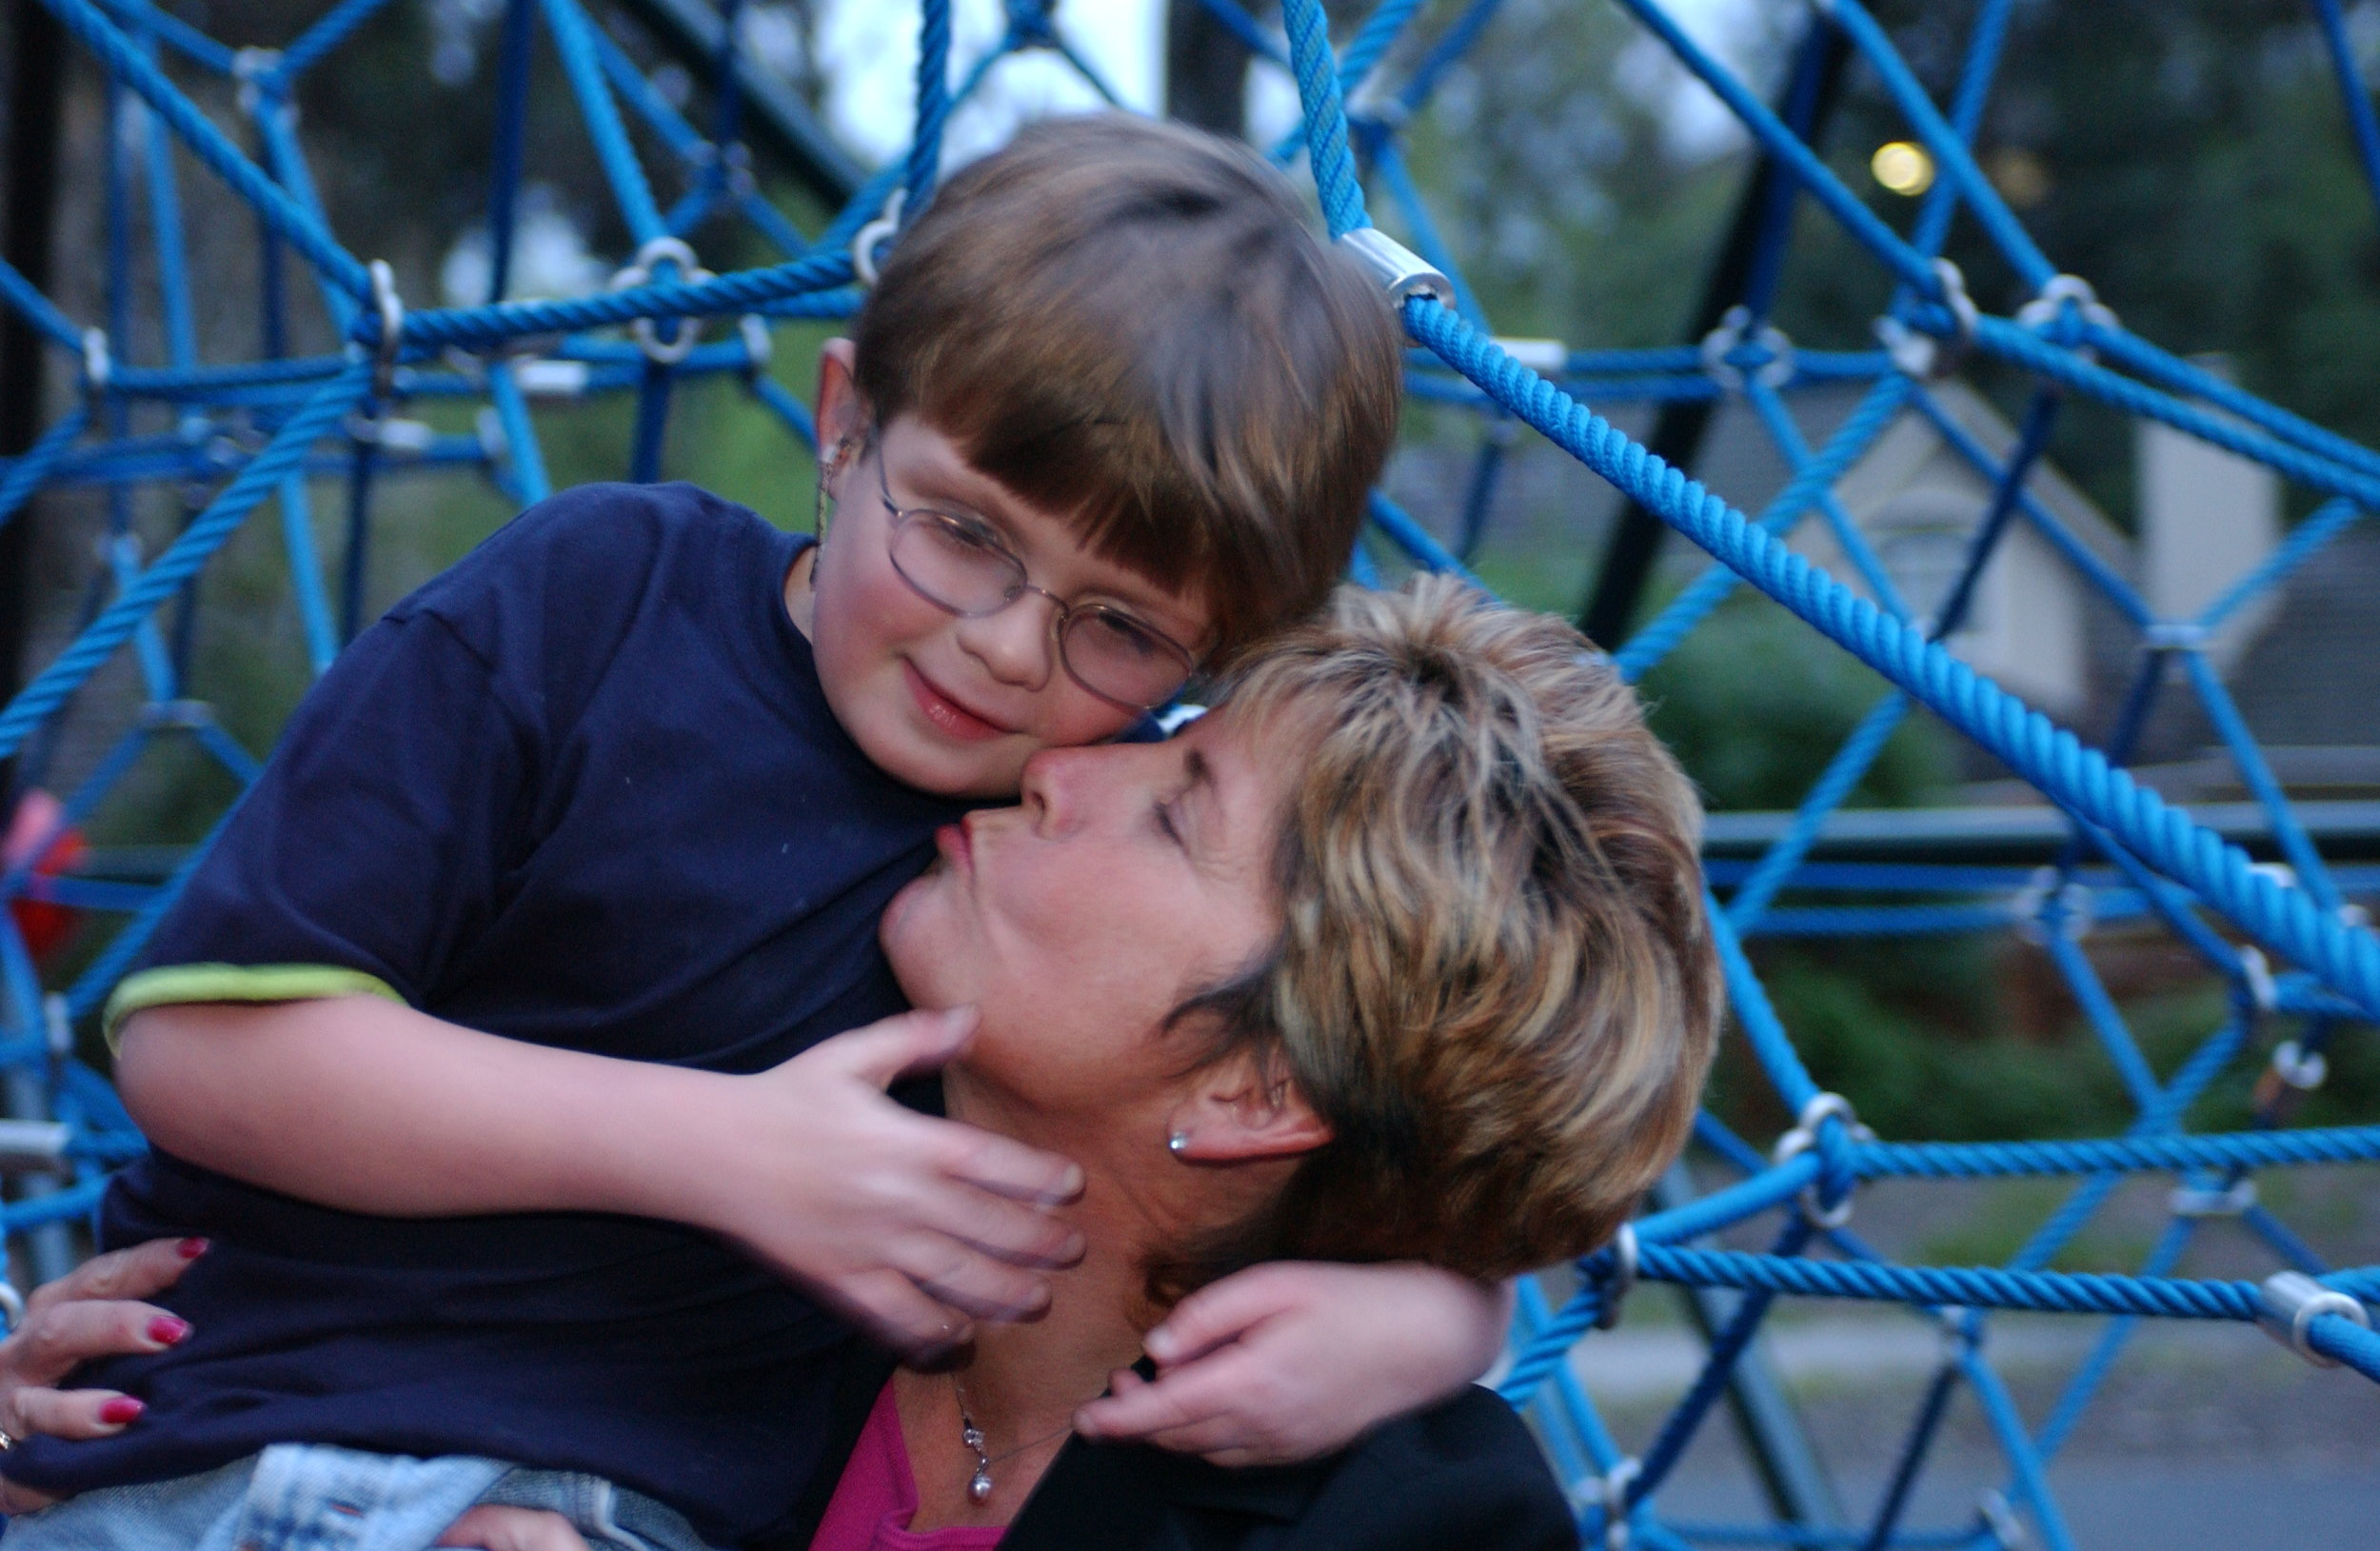 mom kissing robert in the park.JPG